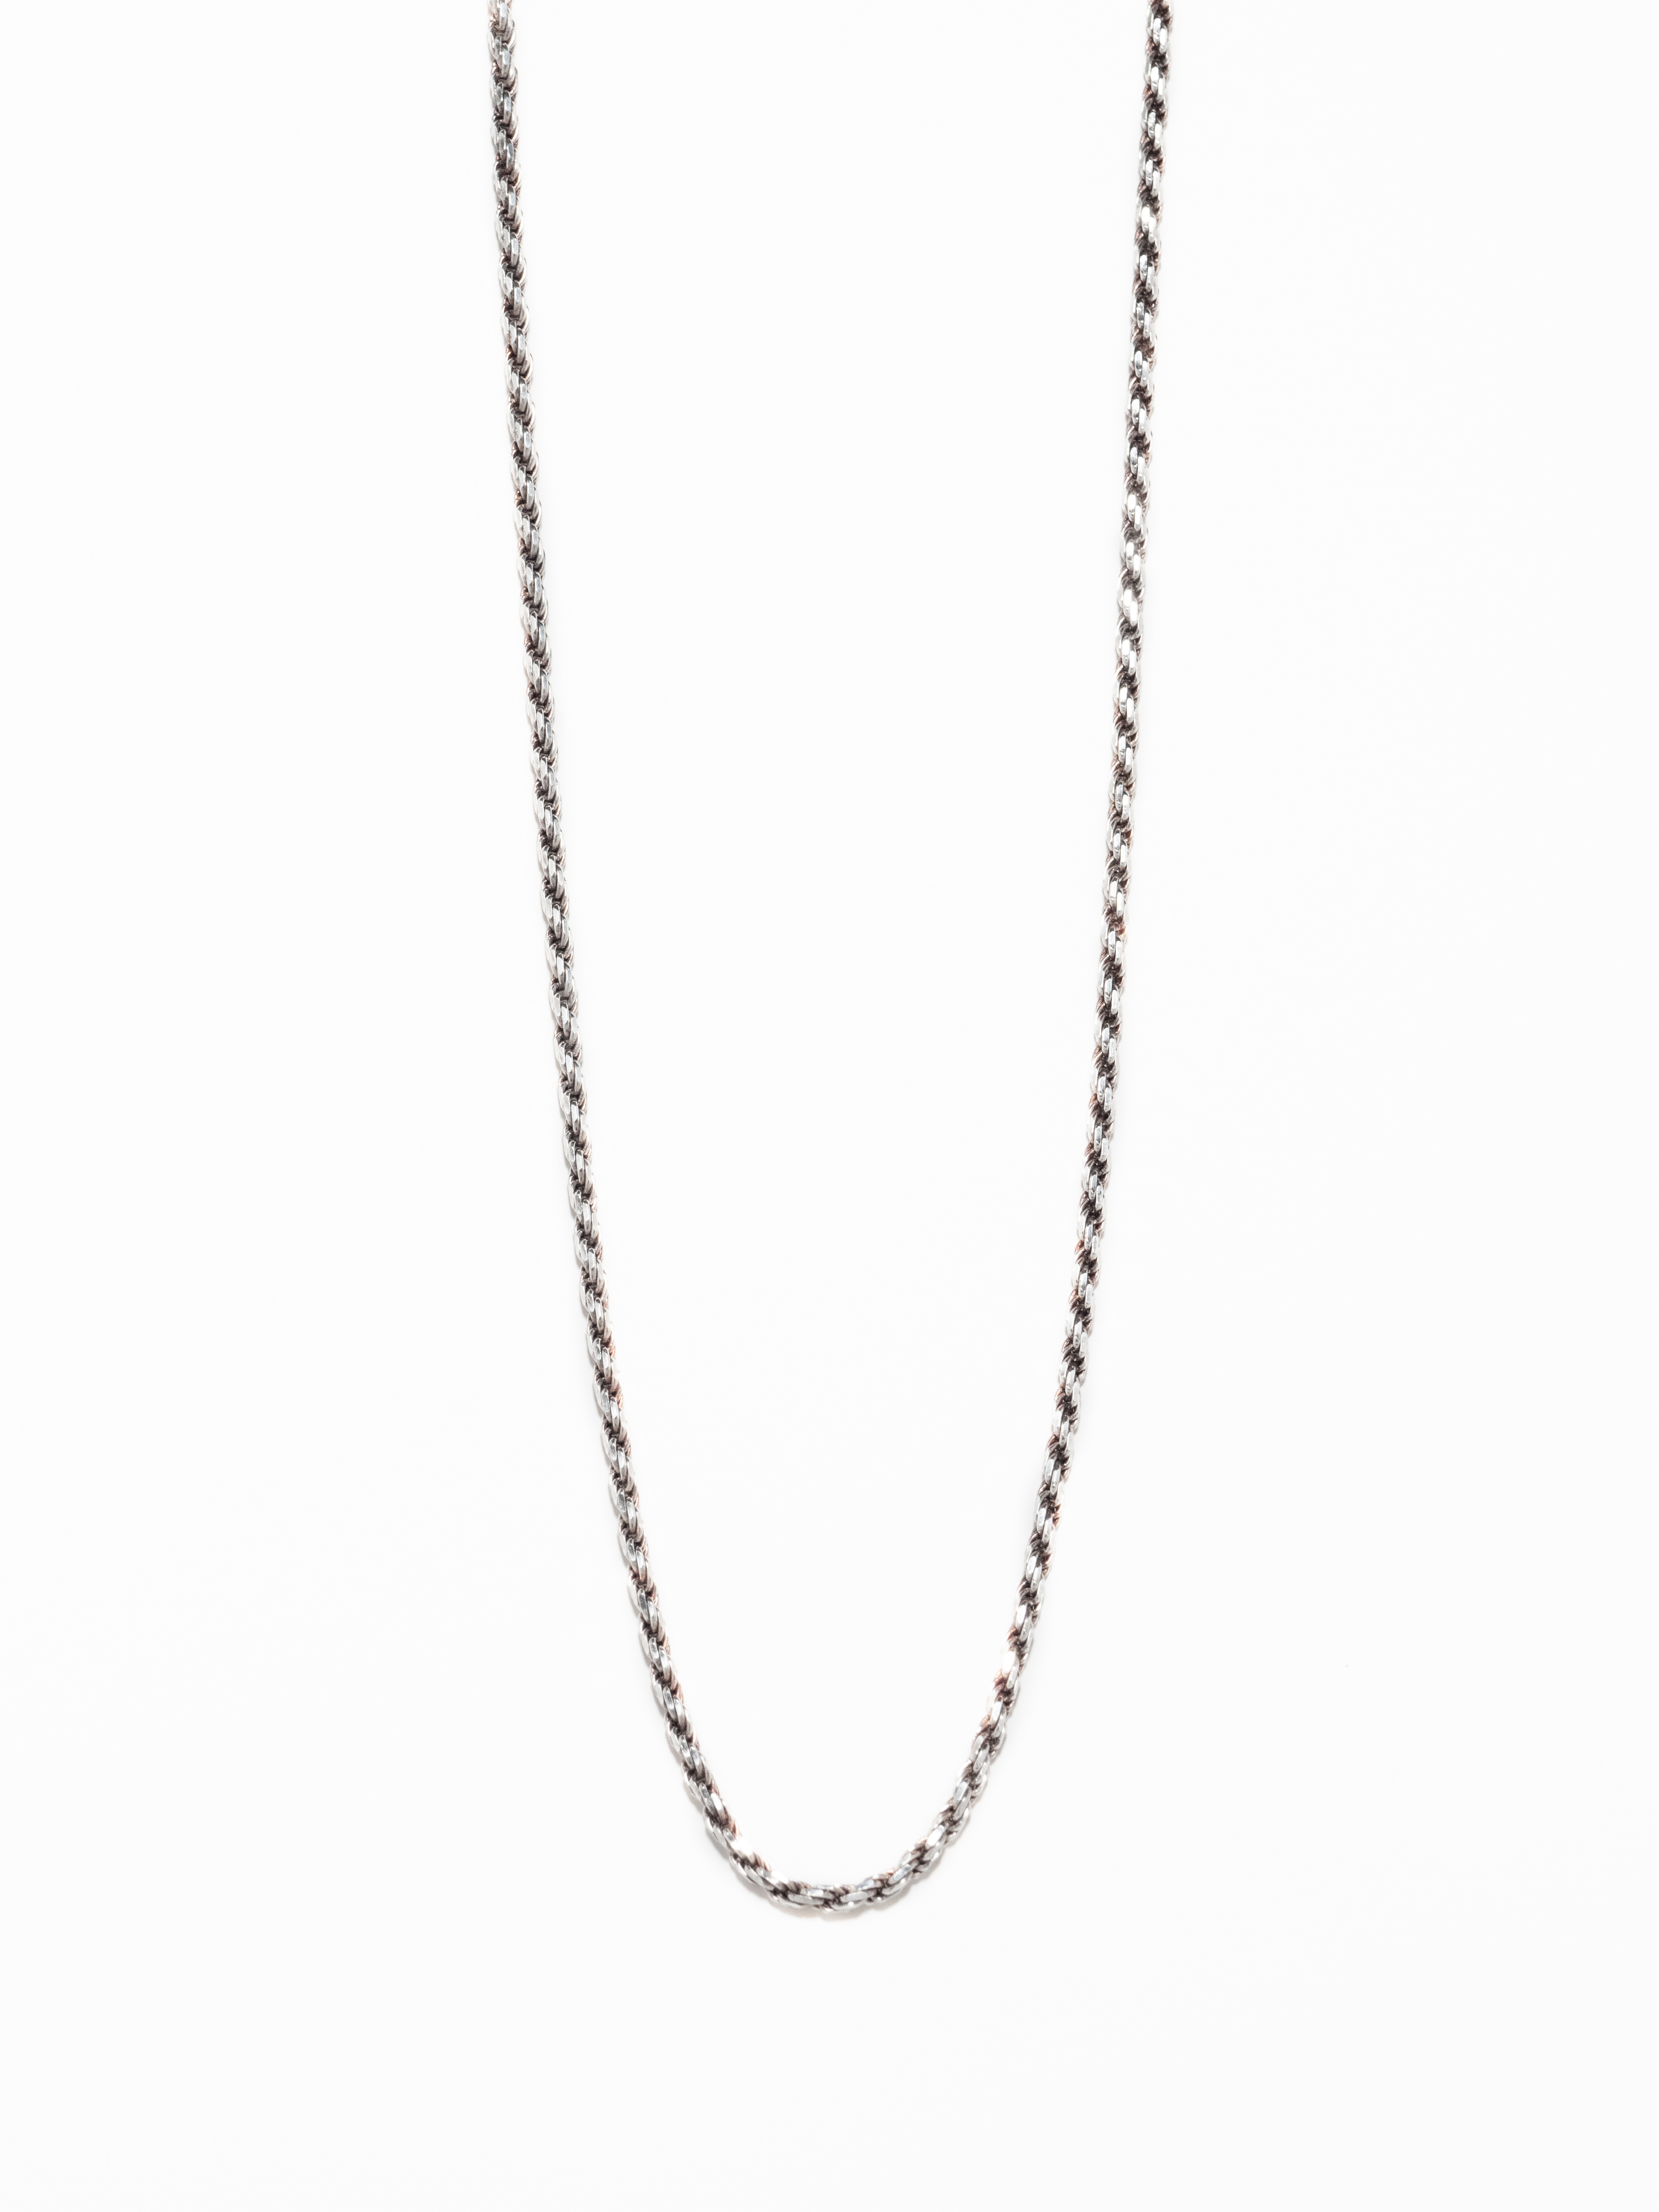 Long Chain Link Necklace / Italy